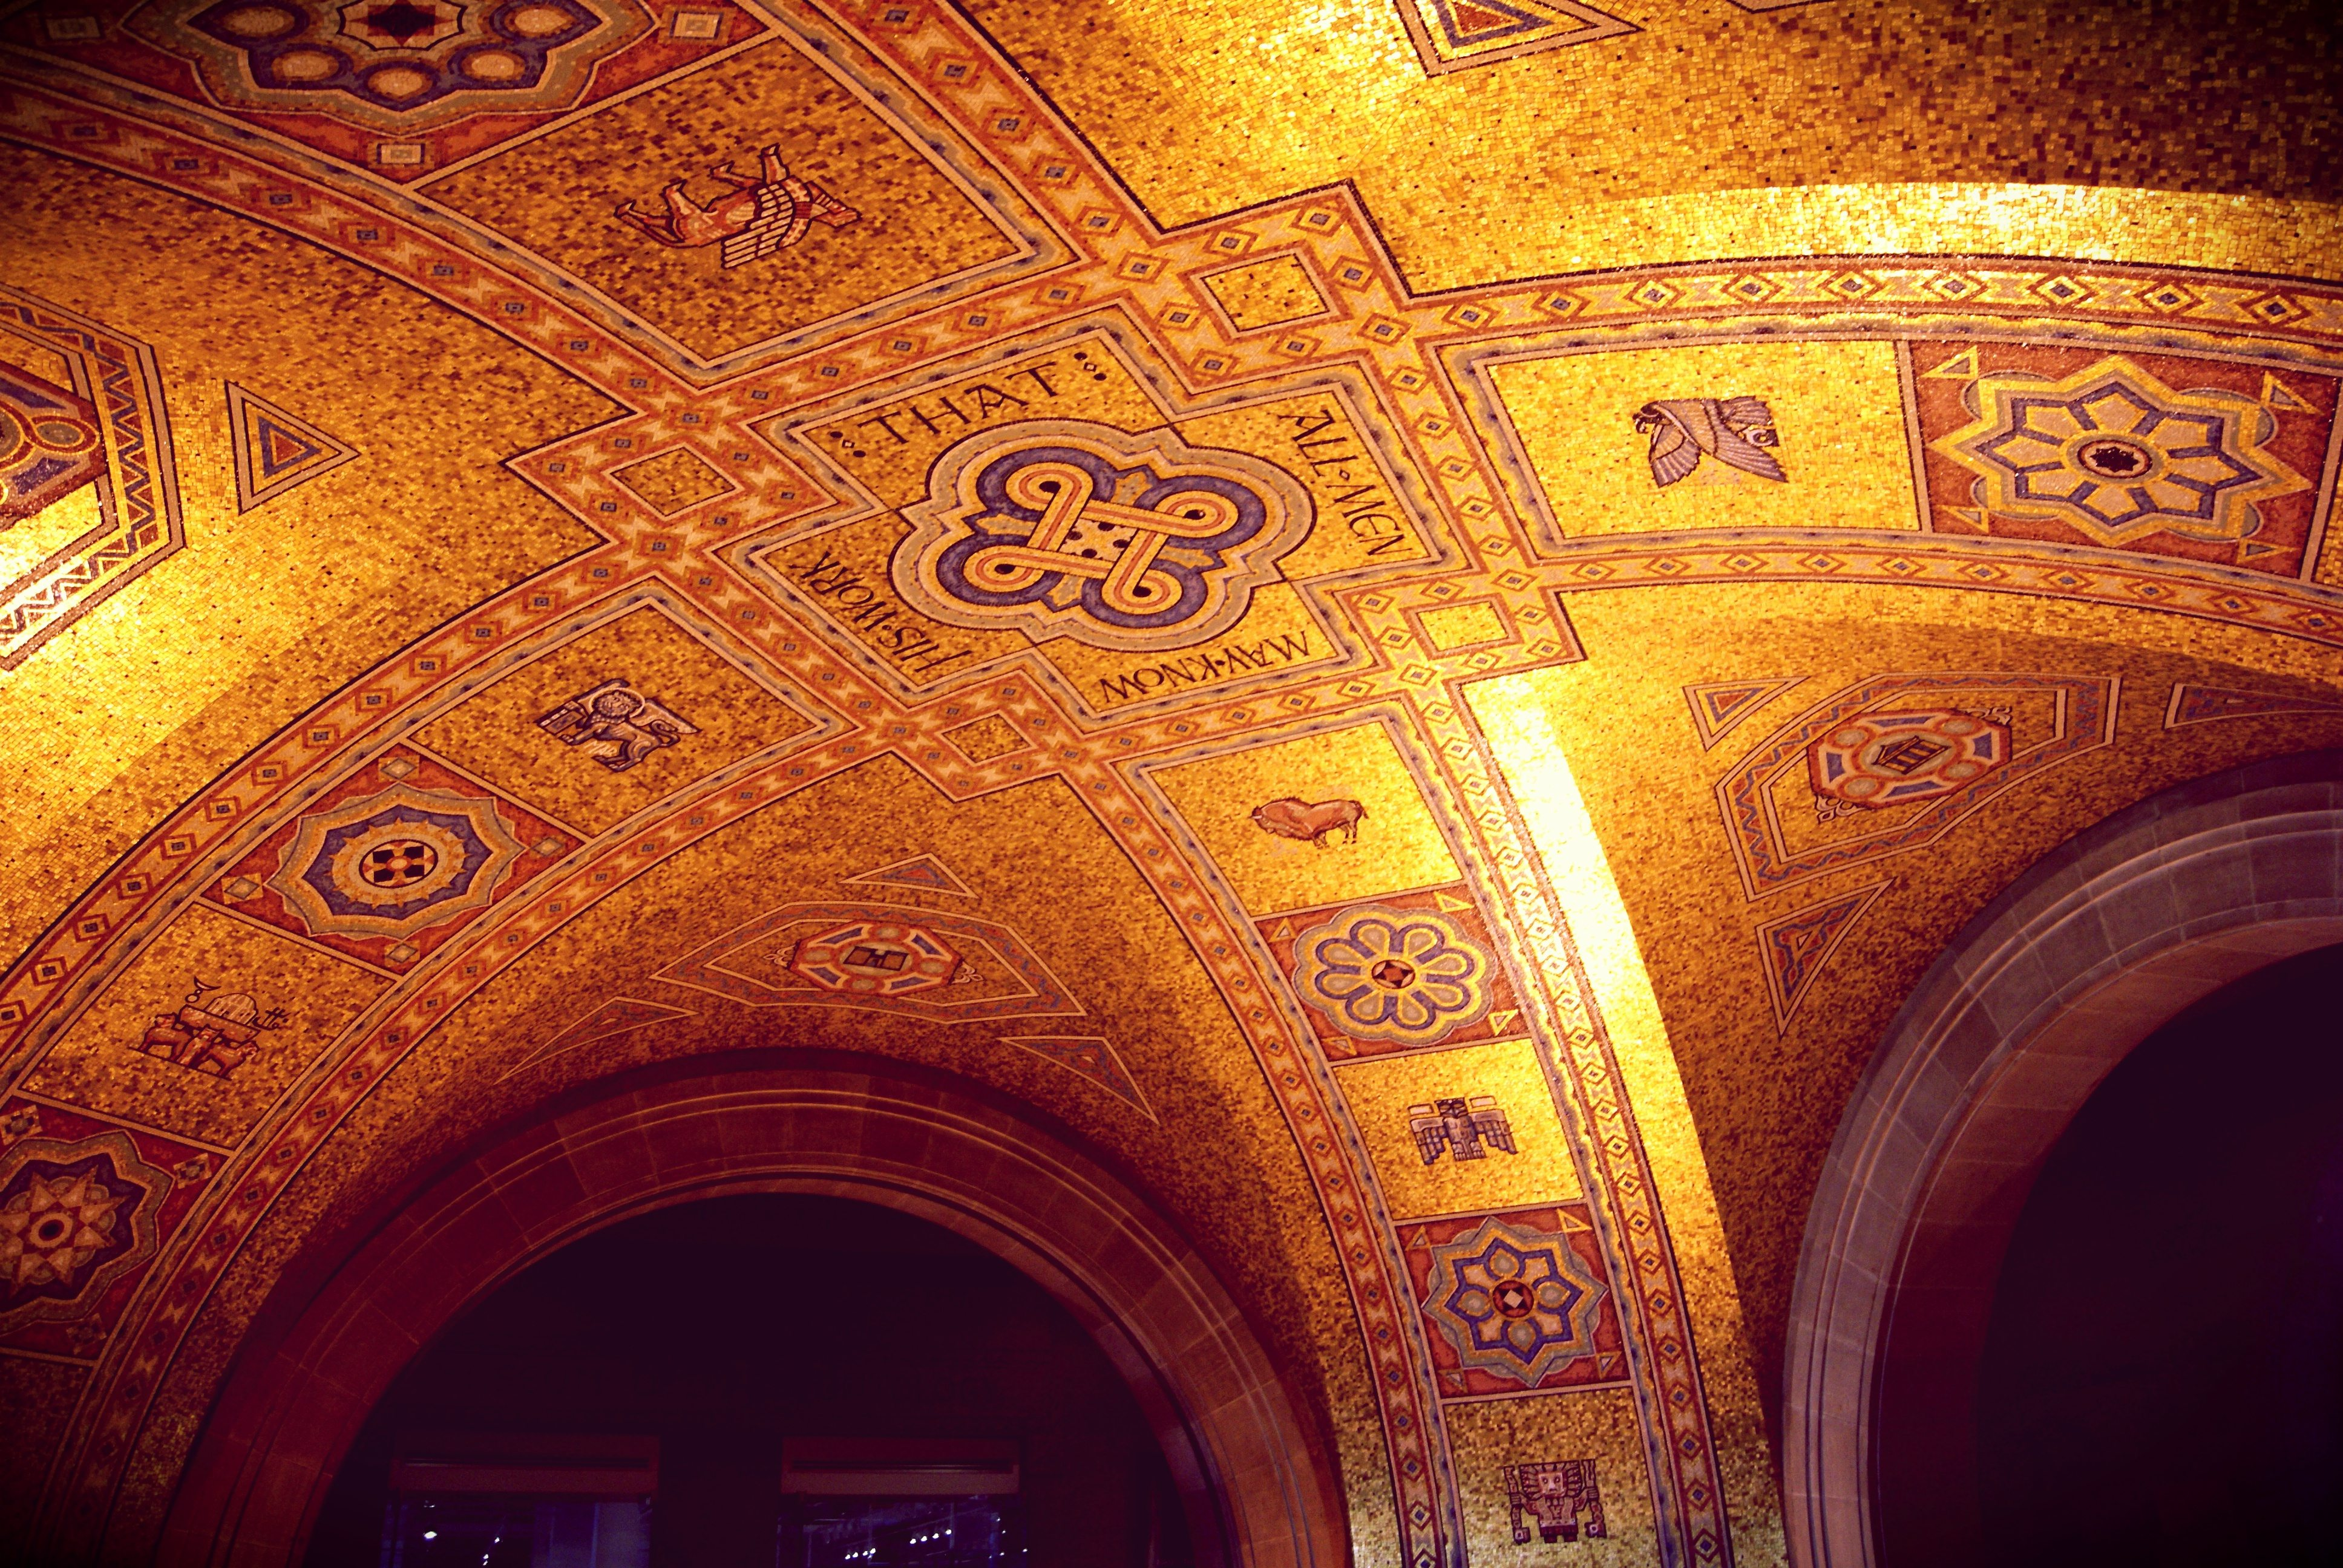 The ceiling of the rotunda at the Royal Ontario Museum. Photo by bodi bold in the Torontoist Flickr Pool.